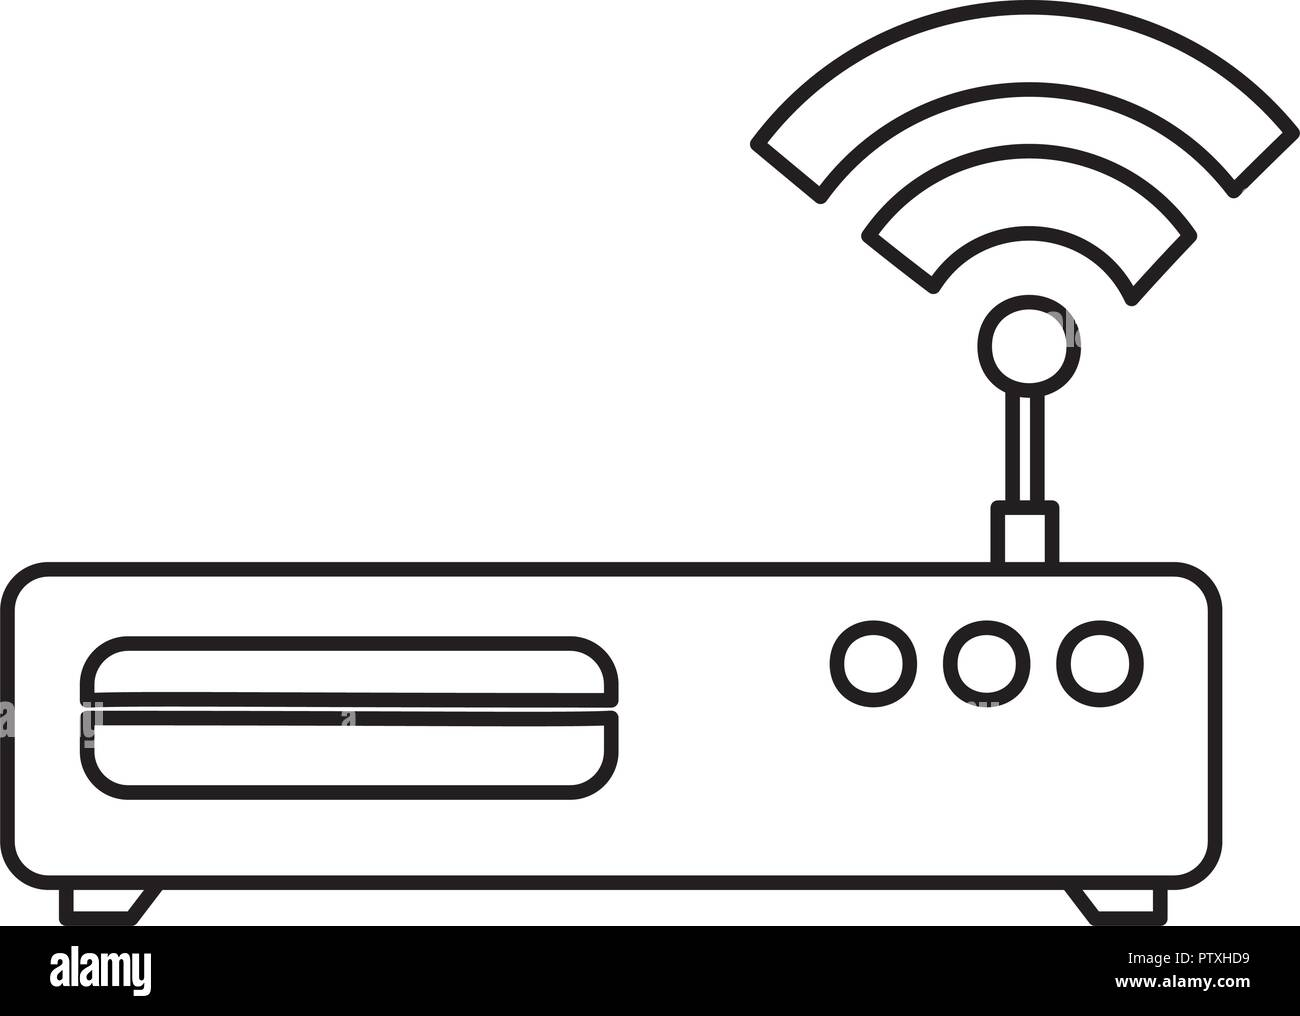 router with wifi signal - Stock Image